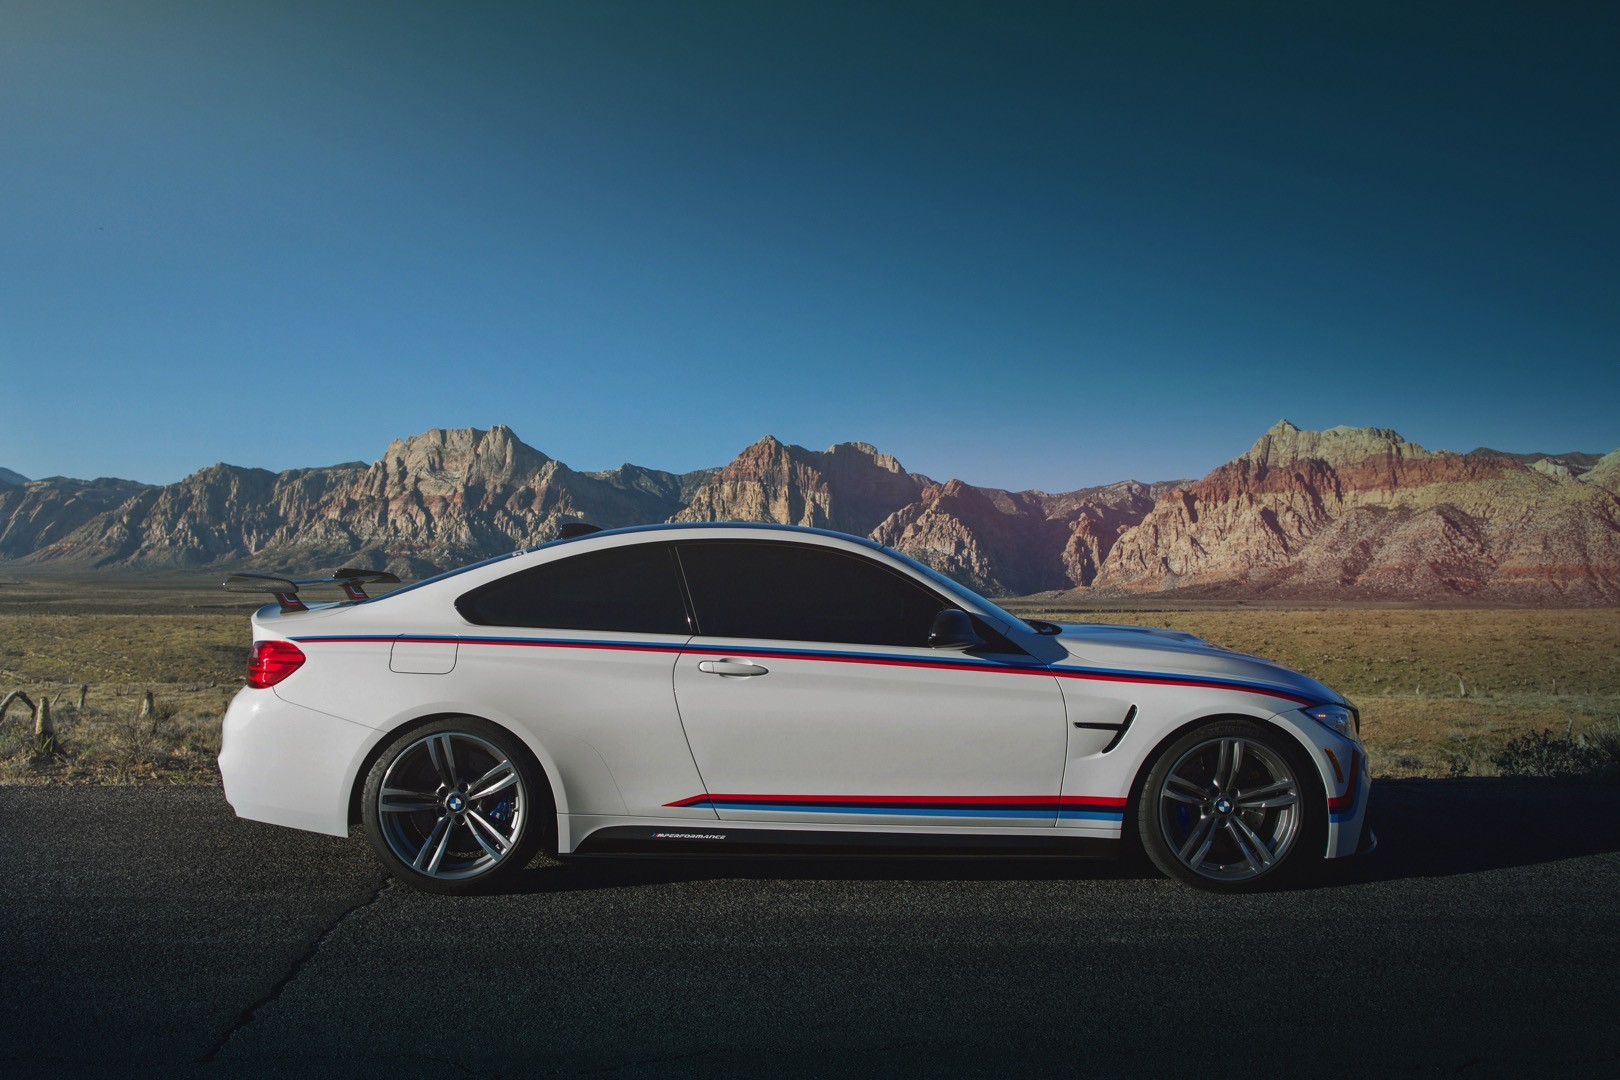 Bmw M4 With M Performance Parts Wallpapers The Thirst For